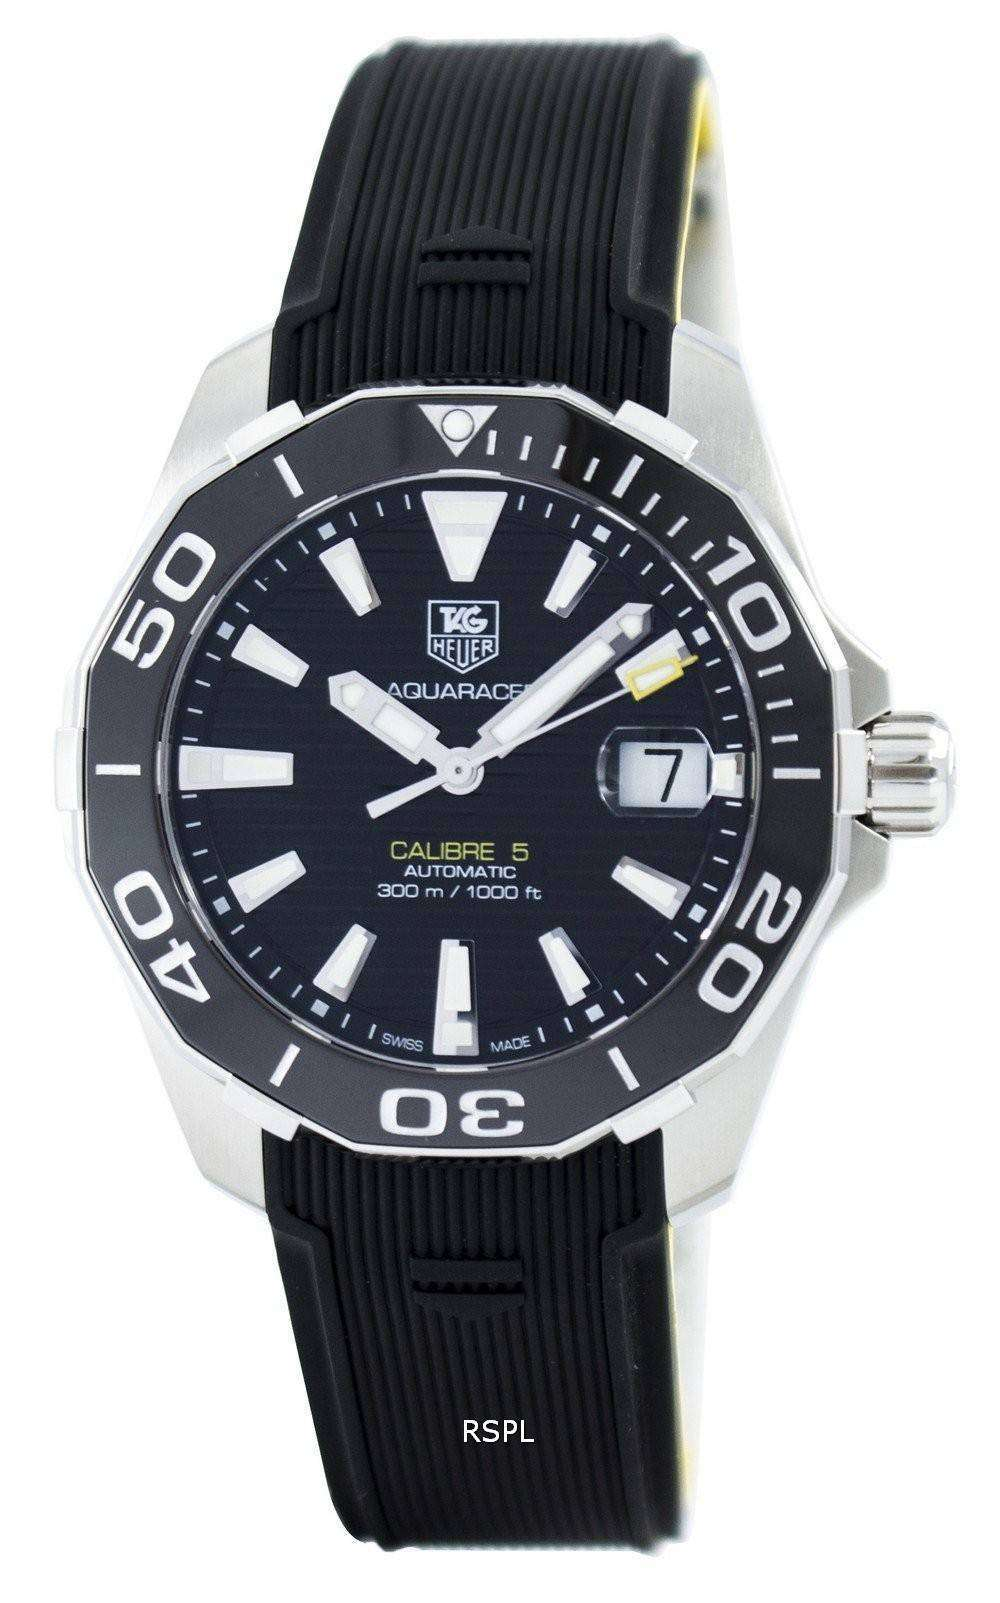 Tag heuer aquaracer automatic calibre 5 swiss made 300m way211a ft6068 men 39 s watch zetawatches for Tag heuer automatic